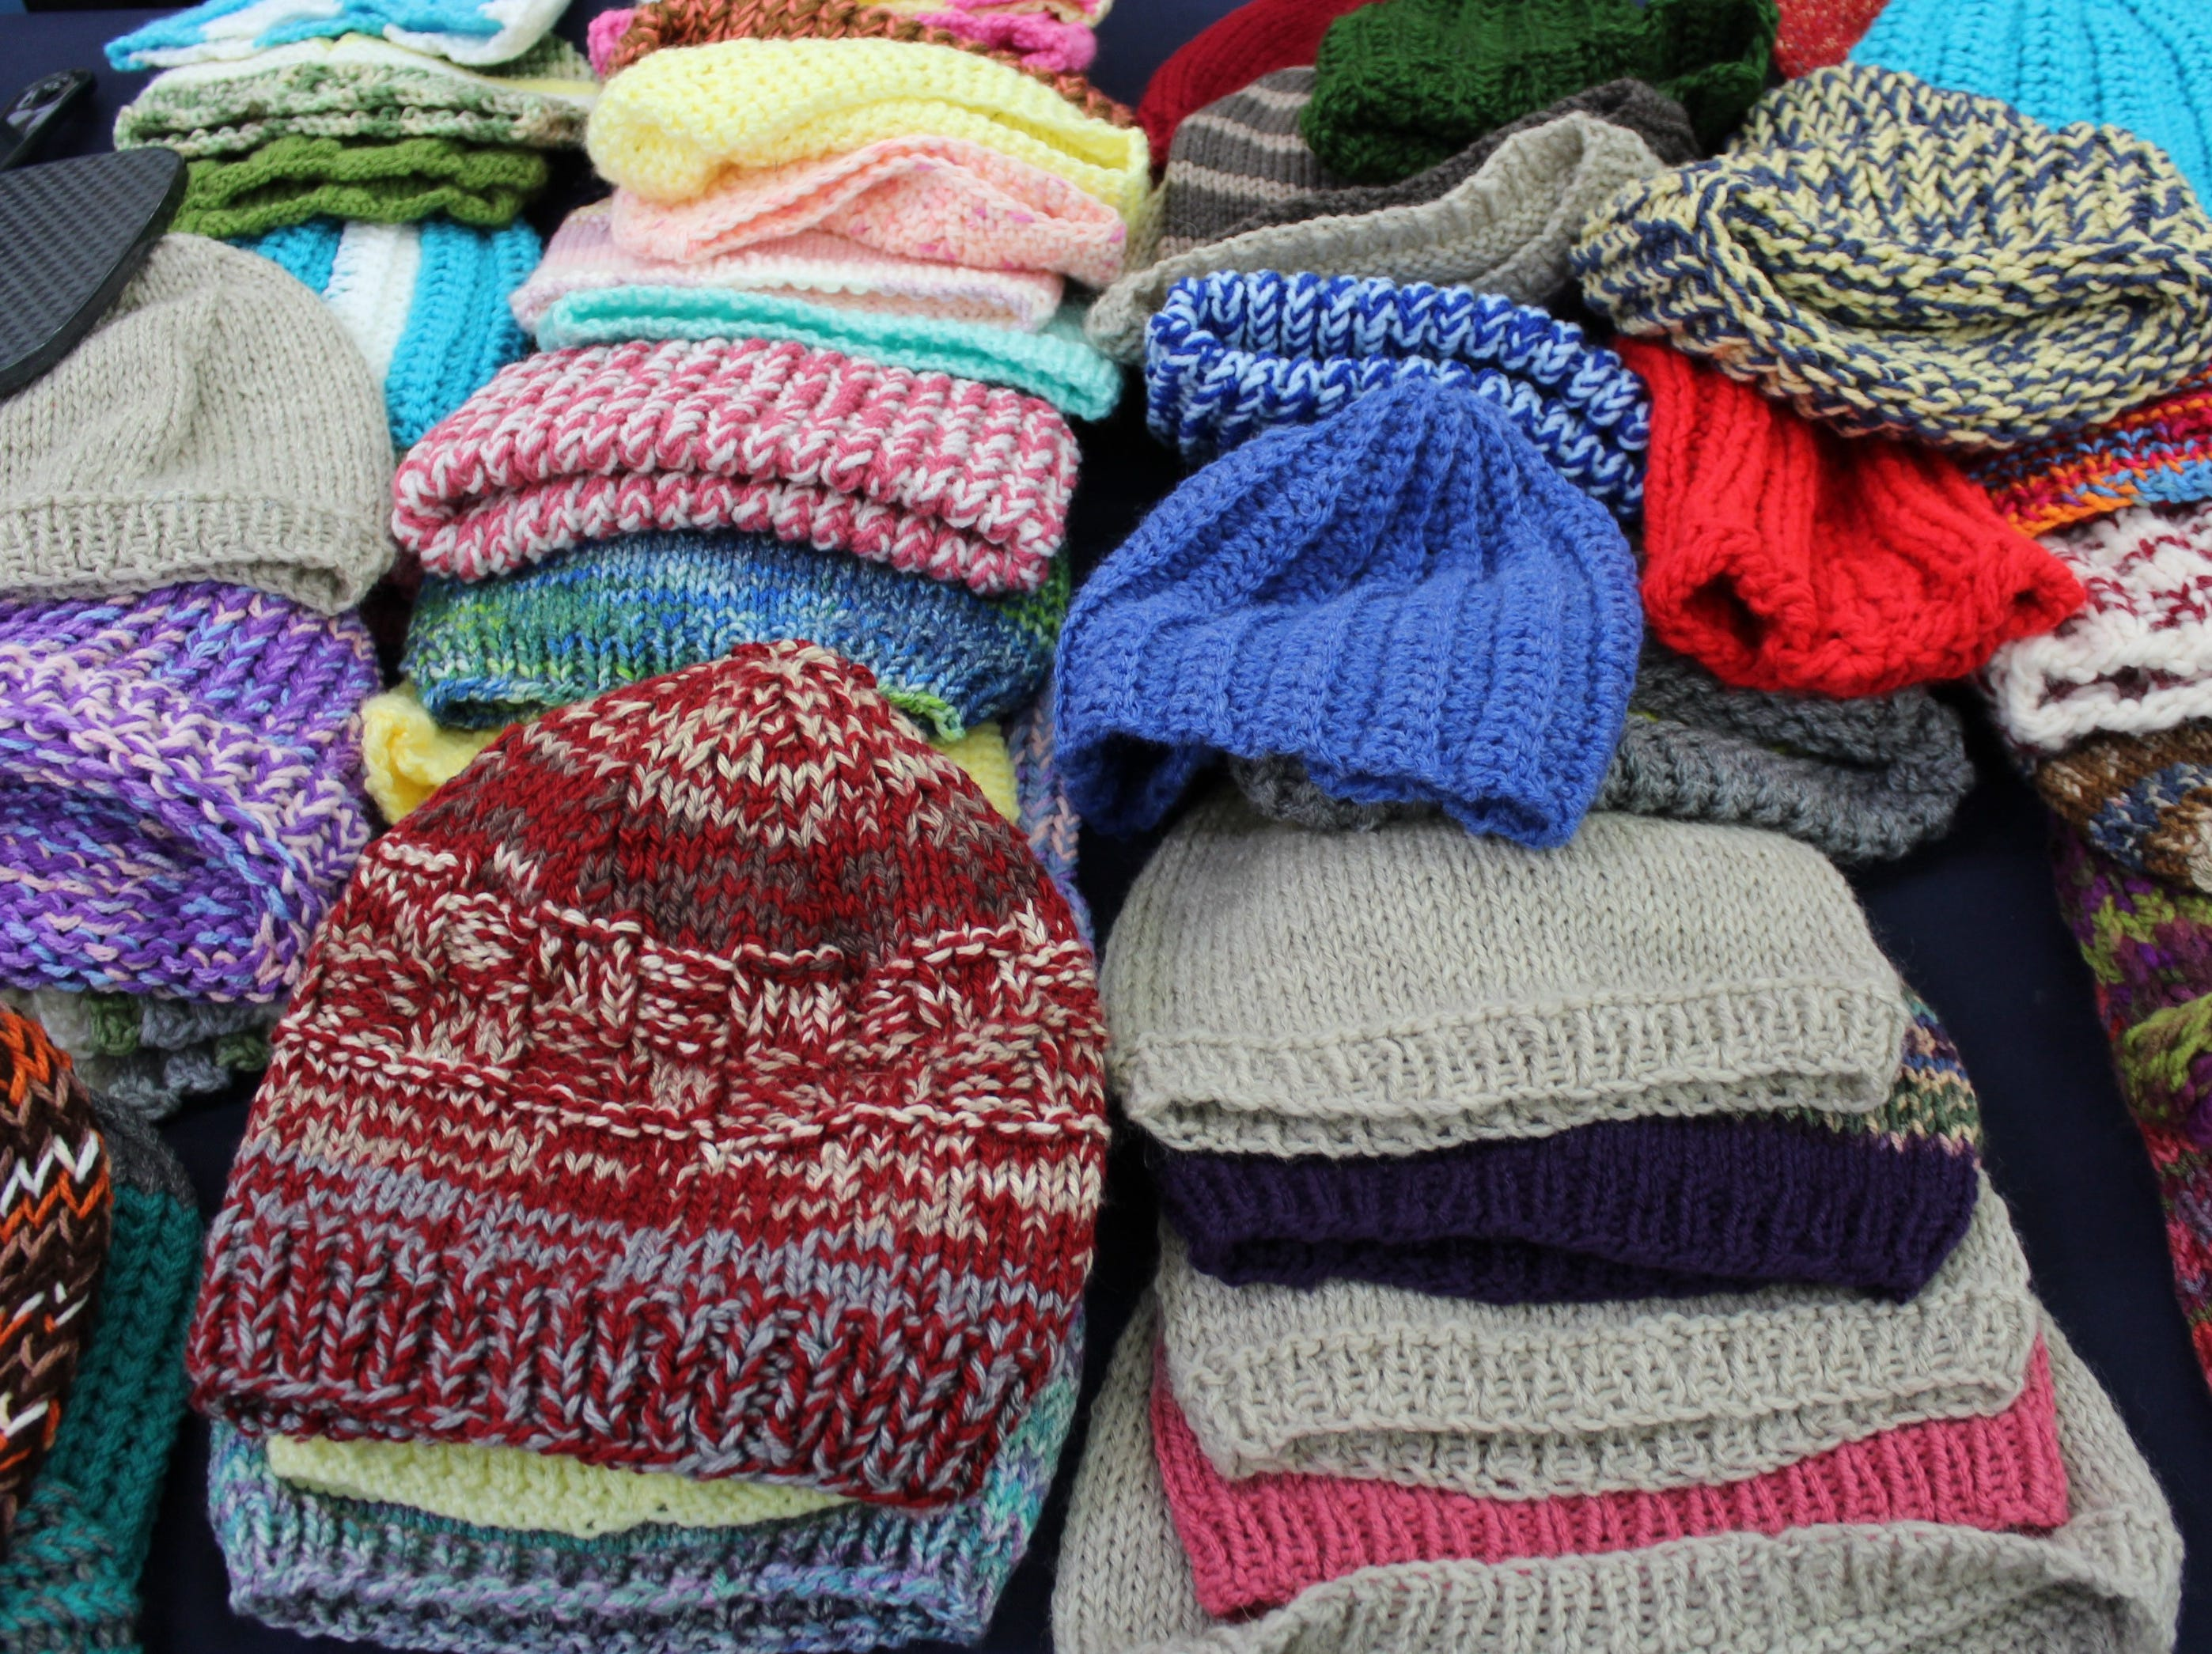 A collection of hand-knitted hats is on display during Operation School Bell, a program that provides kids in need with school attire, on Oct. 16, 2018.